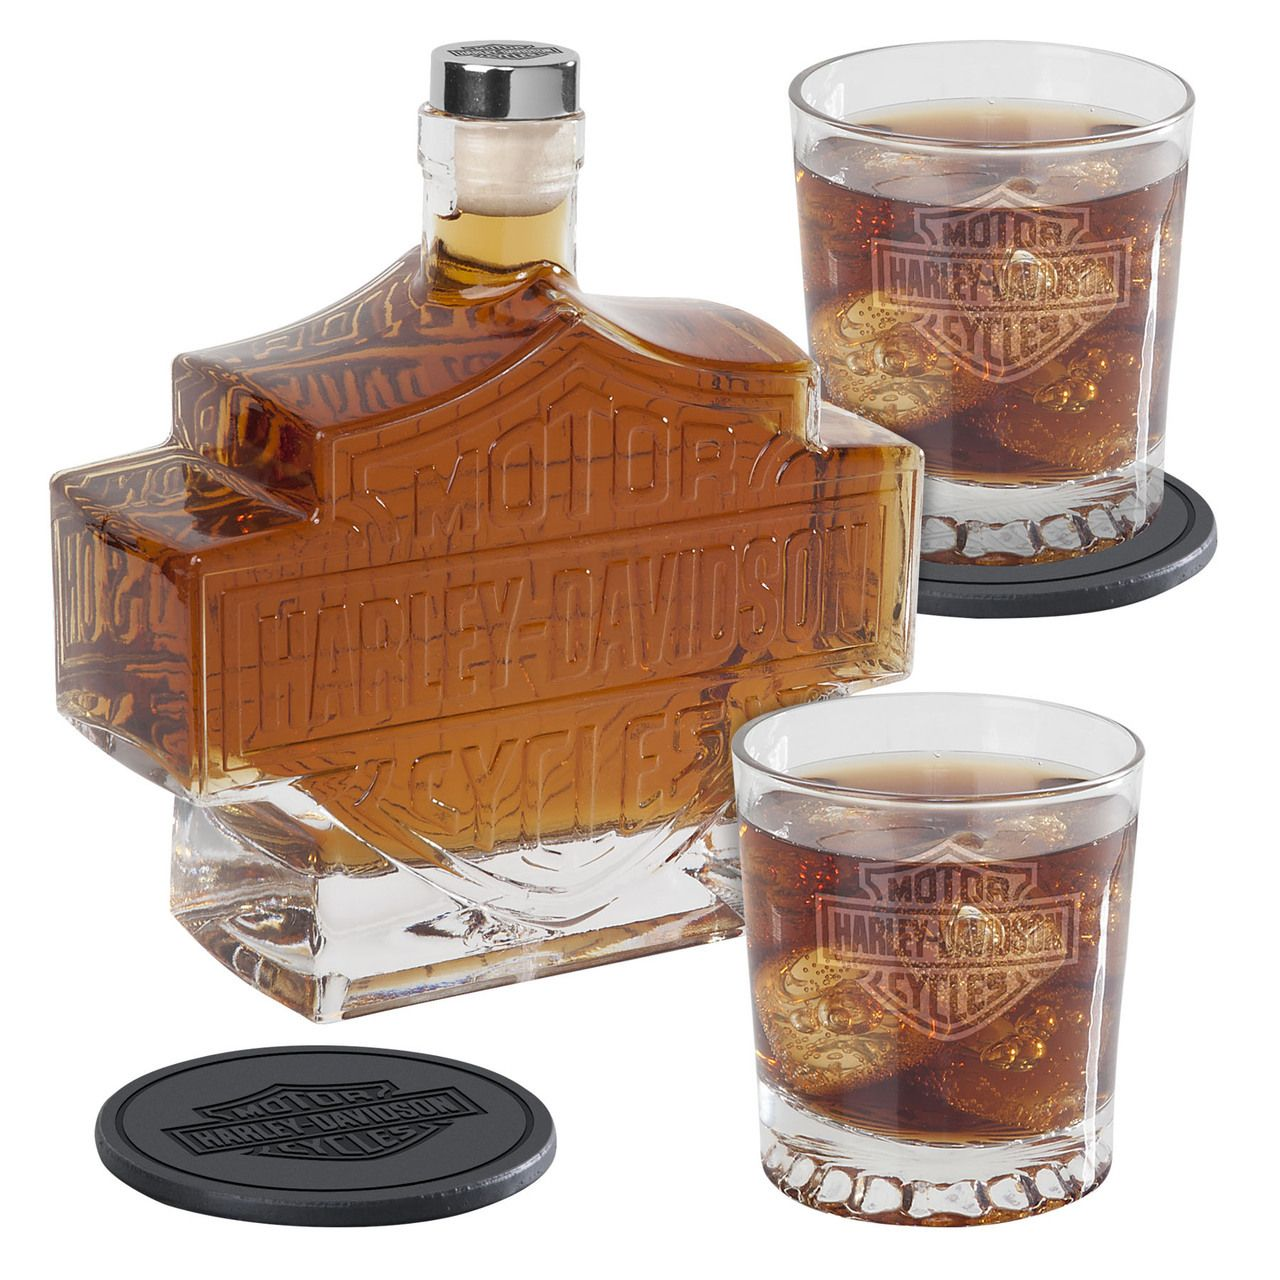 Harley Davidson Decanter Set Liquor Pitcher Glass